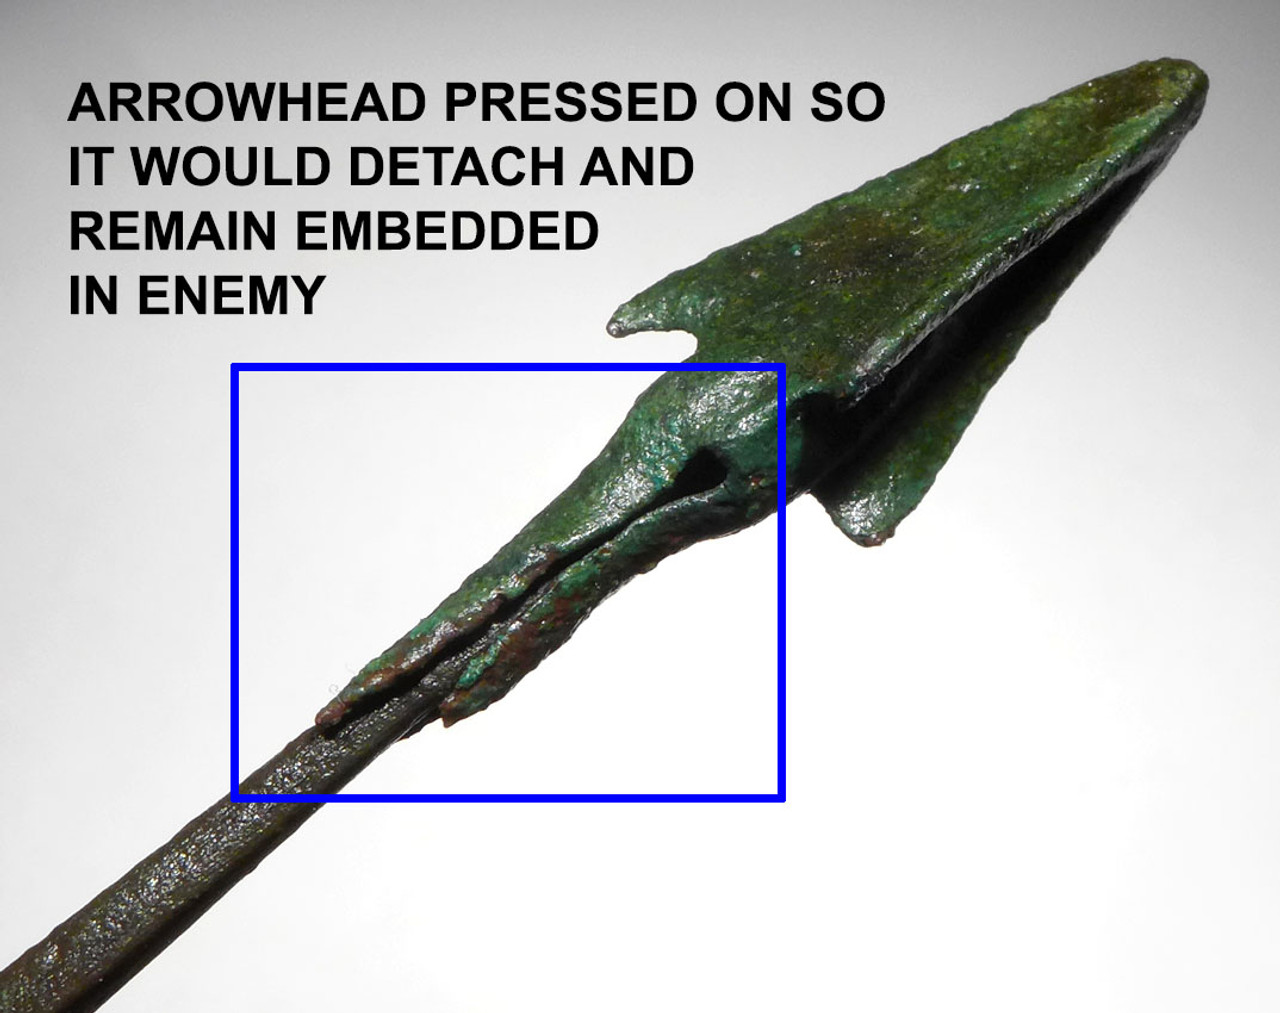 NE175 - ULTRA RARE FRAGMENTING ANCIENT BRONZE BARBED TRILOBATE ARROWHEAD FROM THE NEAR EASTERN BRONZE AGE